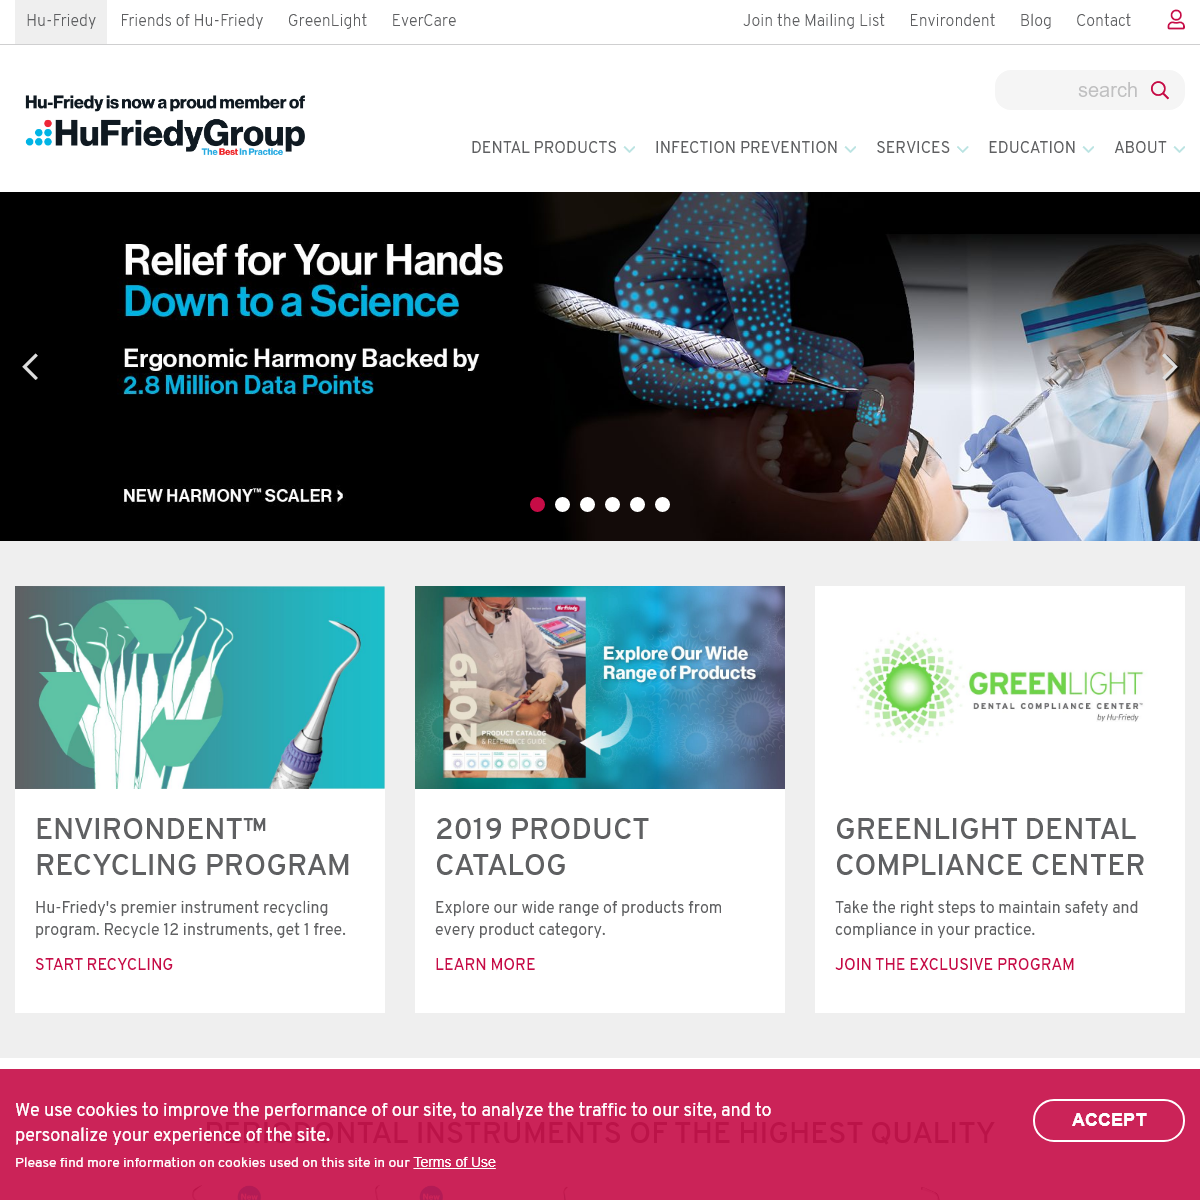 HuFriedyGroup - The Best in Practice